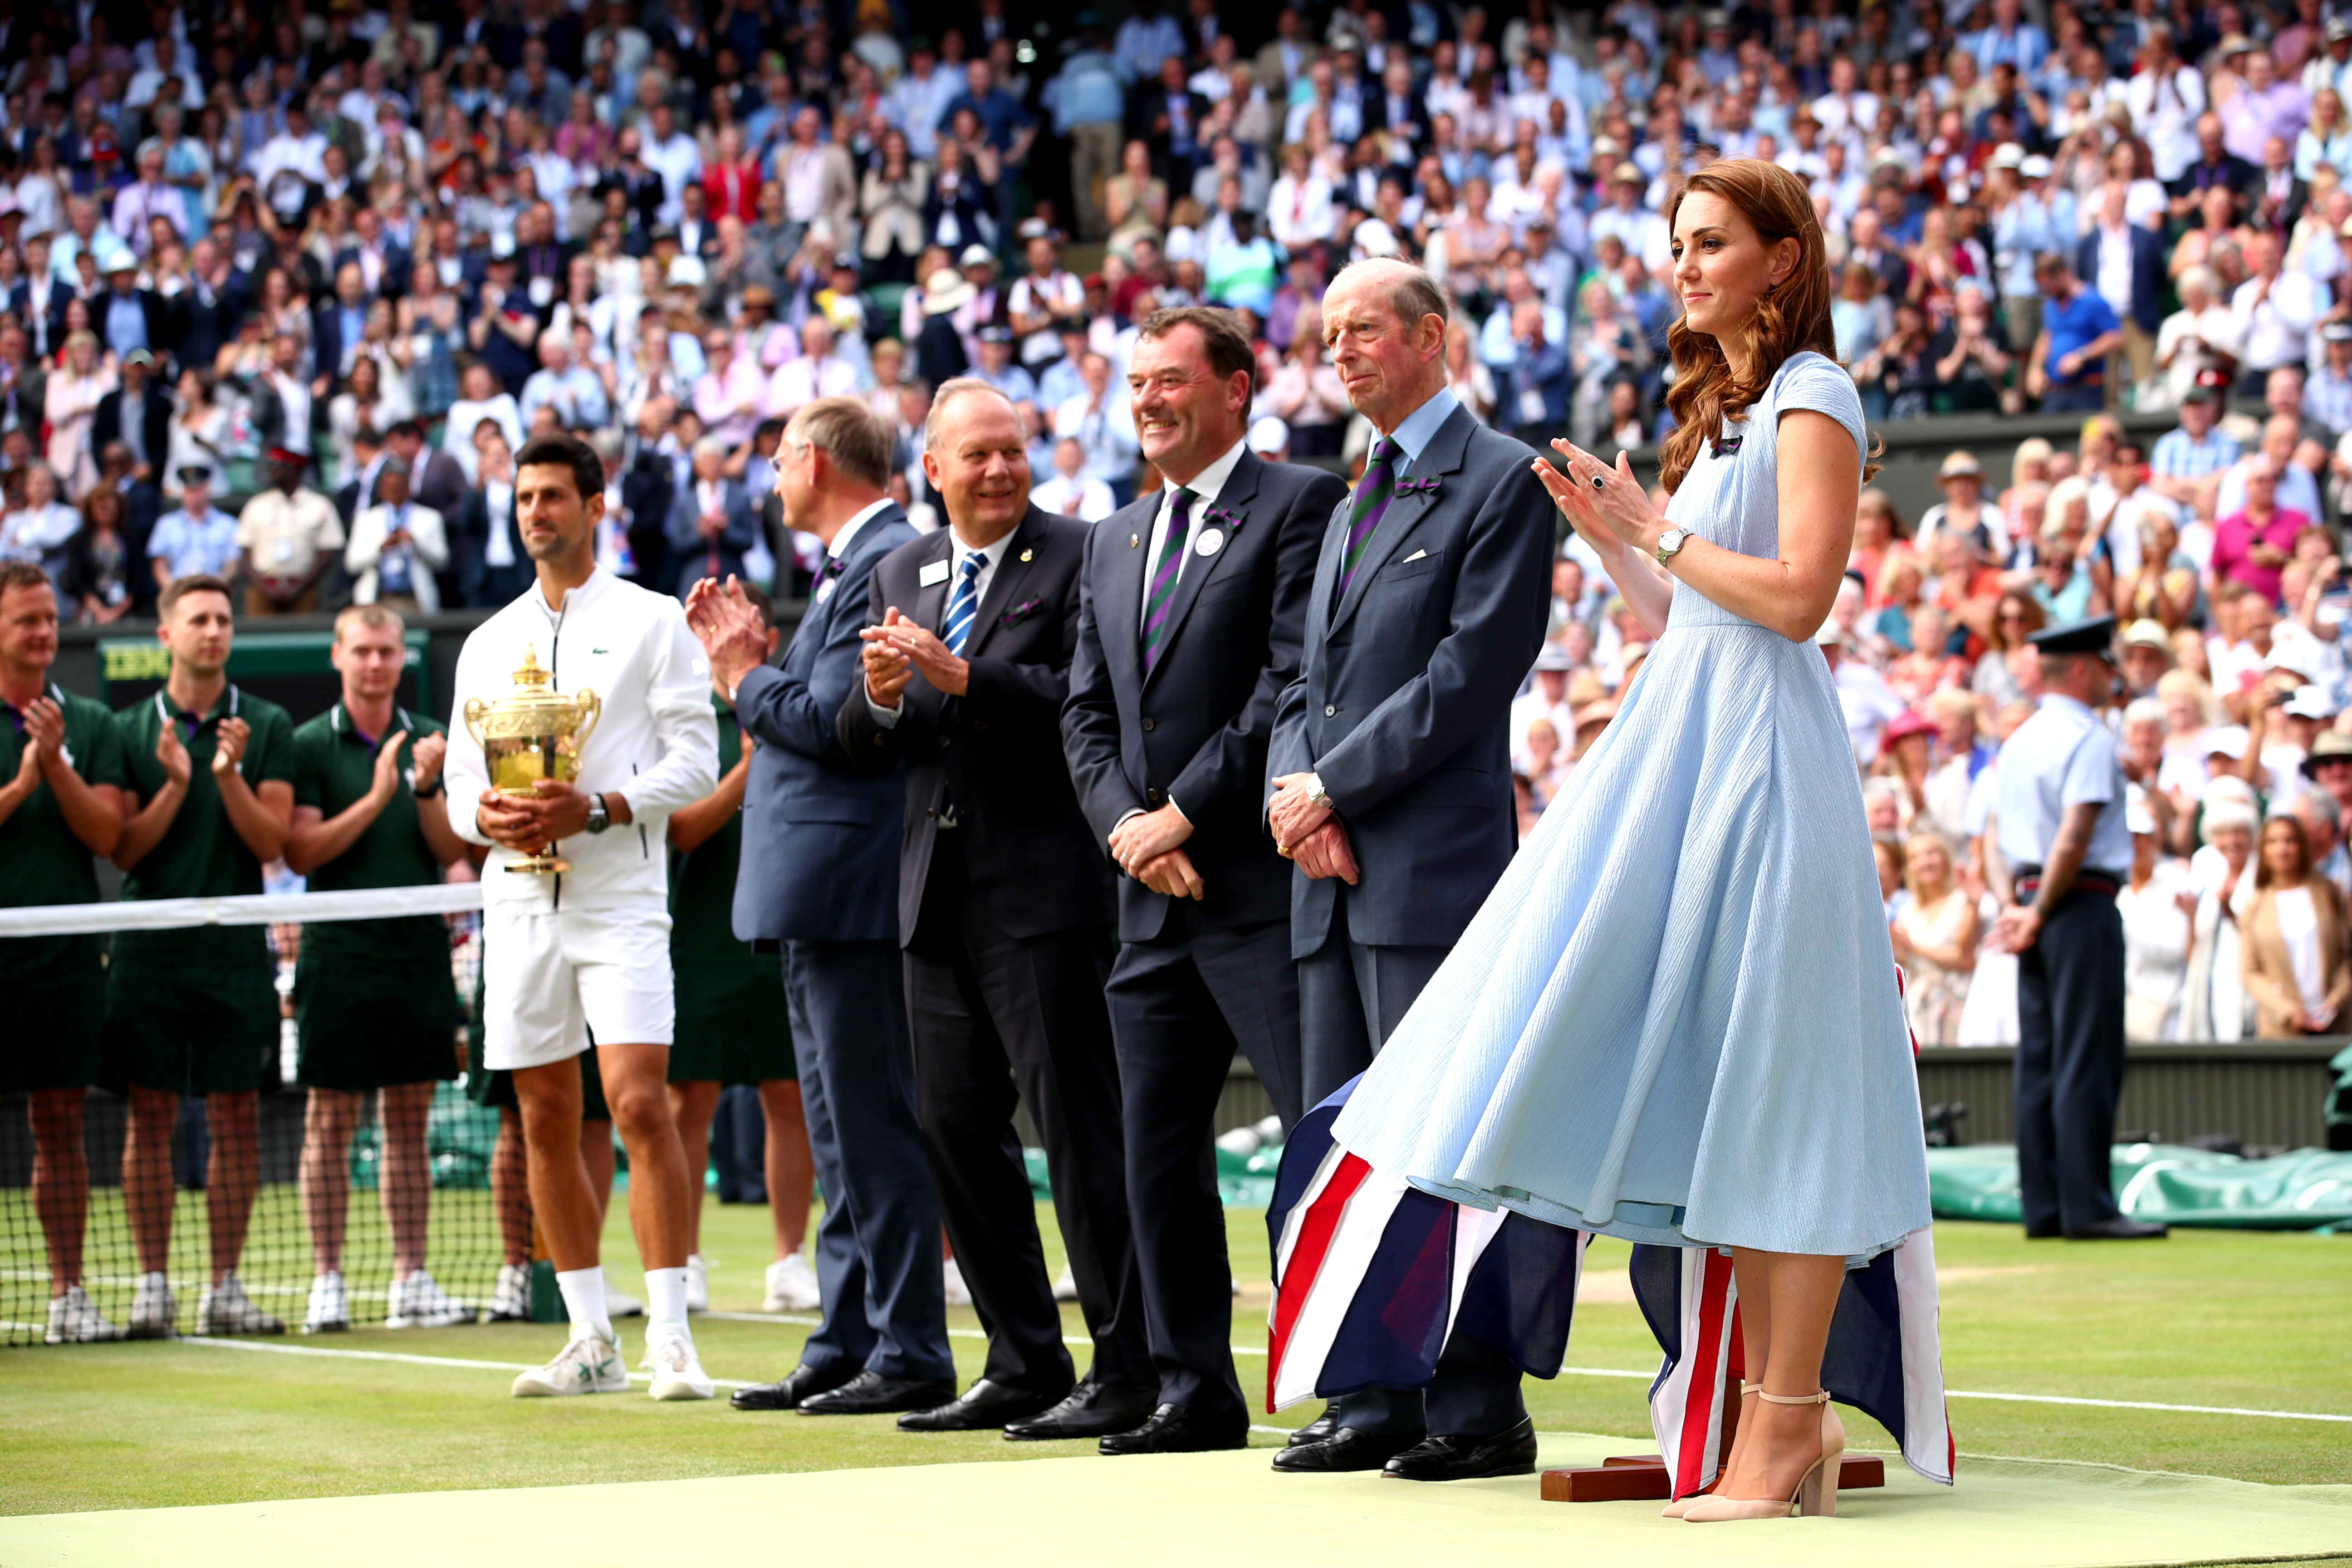 LONDON, ENGLAND - JULY 14:  Catherine Duchess of Cambridge reacts during the trophy ceremony after the Men's Singles final against Roger Federer of Switzerland during Day thirteen of The Championships - Wimbledon 2019 at All England Lawn Tennis and Croquet Club on July 14, 2019 in London, England. (Photo by Clive Brunskill/Getty Images)